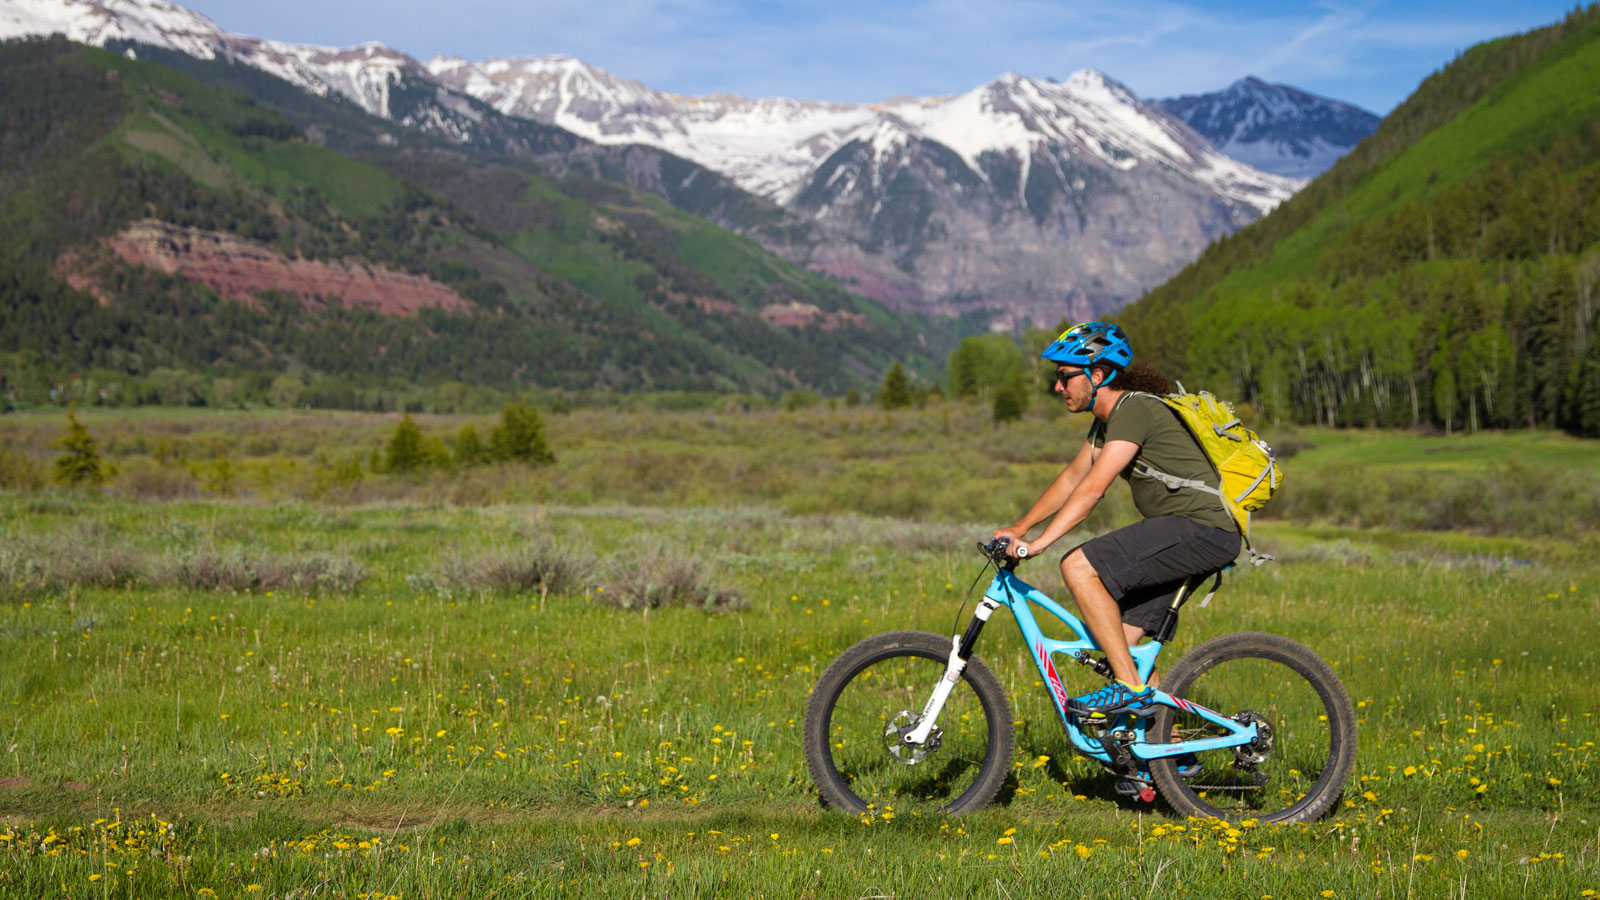 Casual Mountain Biking on Telluride's Valley Floor